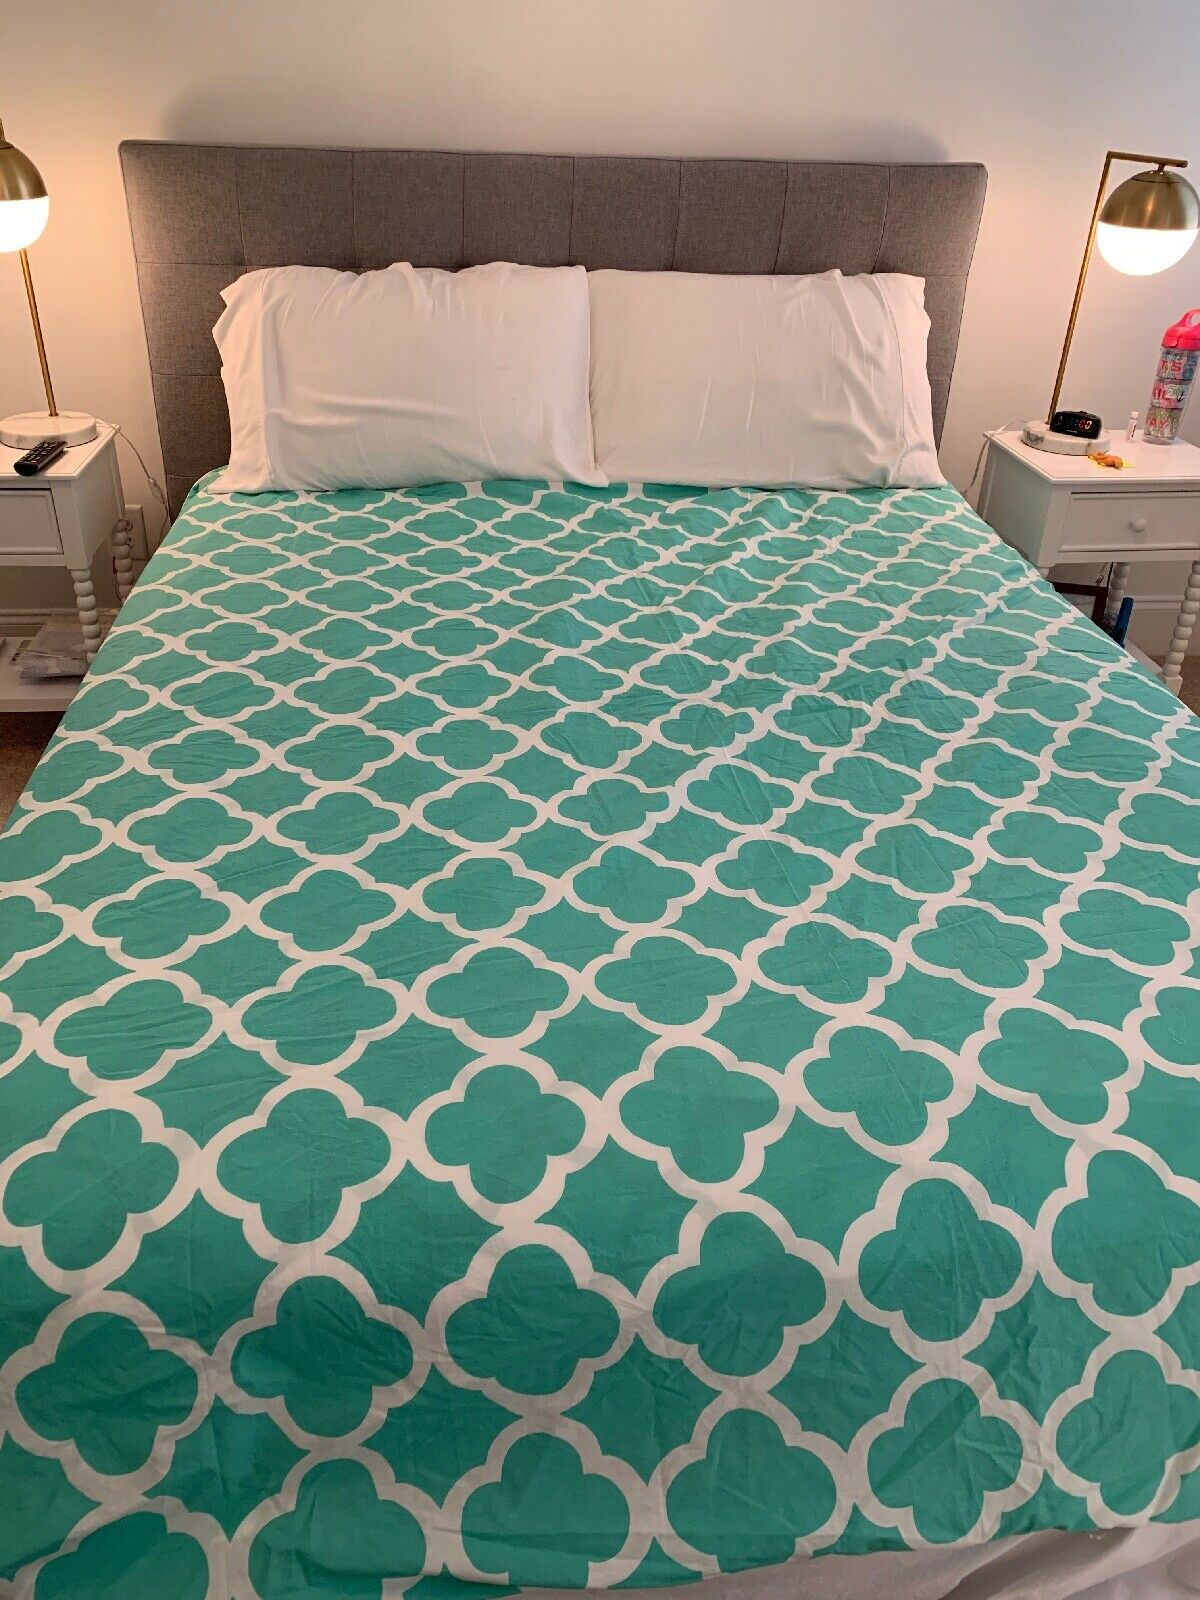 Duvet cover queen pottery barn white and teal and can be reversed